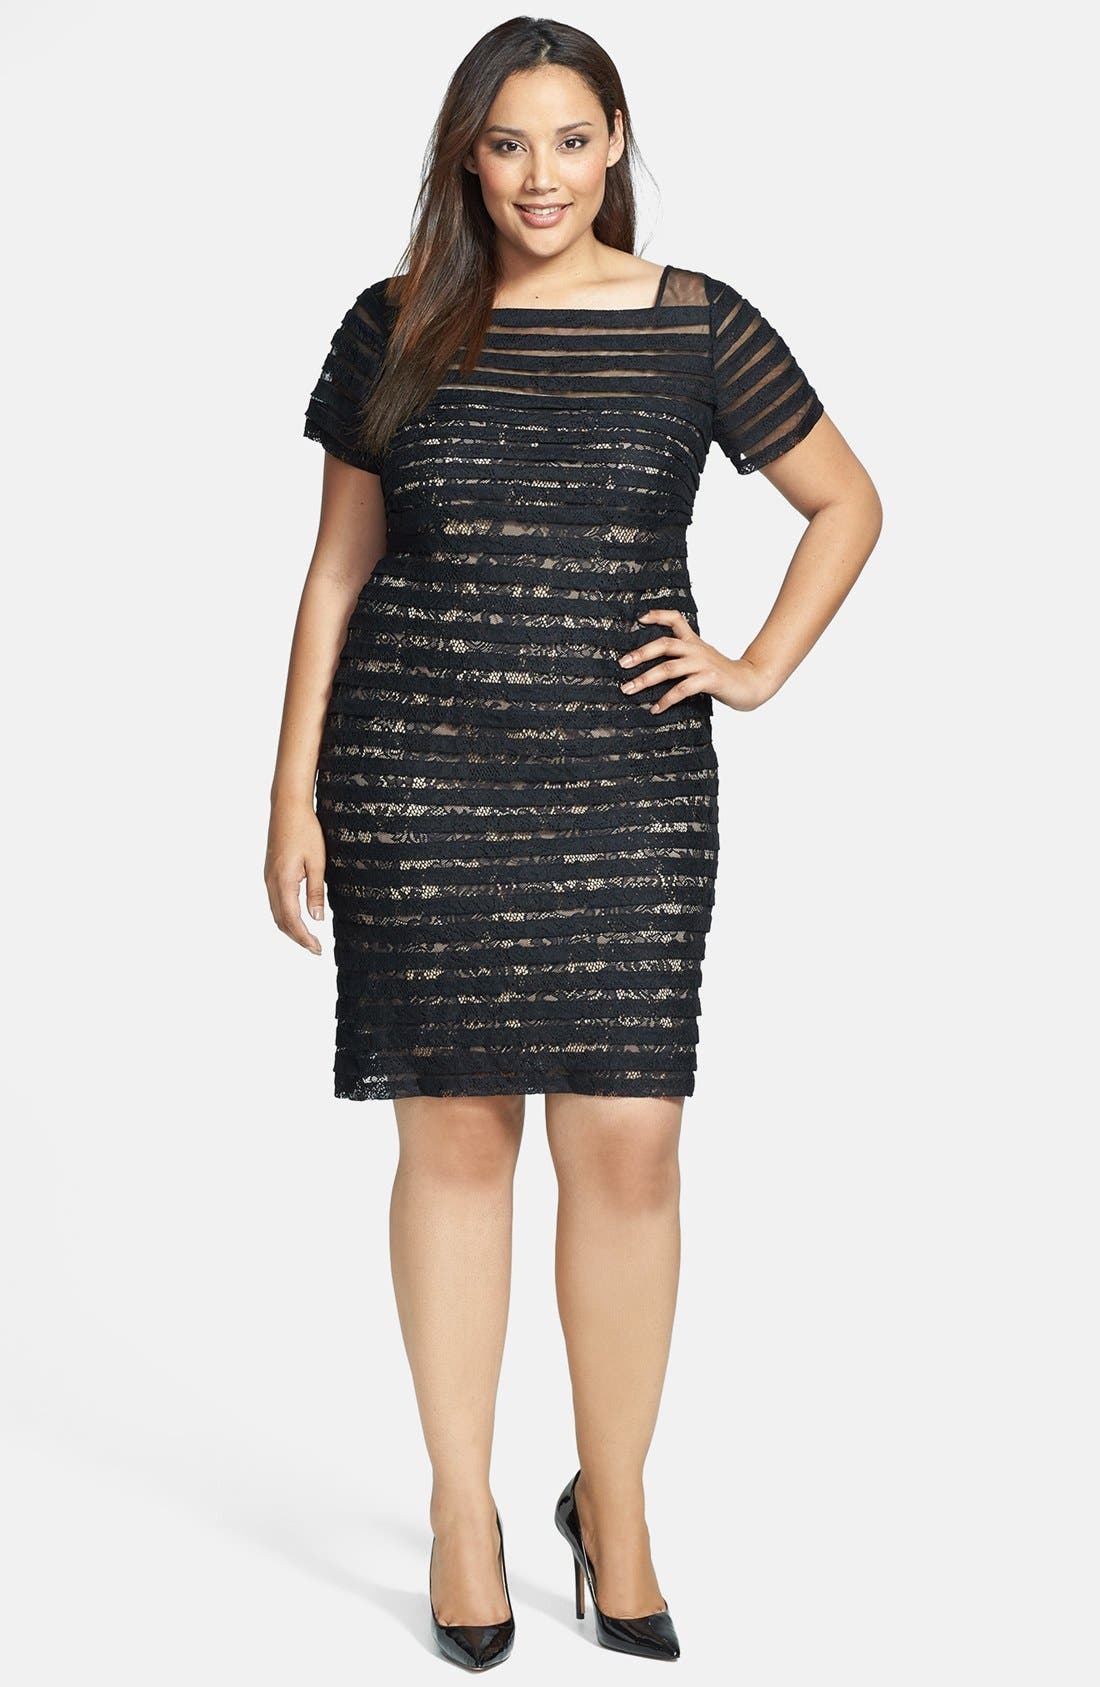 Alternate Image 1 Selected - Adrianna Papell Banded Illusion Sheath Dress (Plus Size)